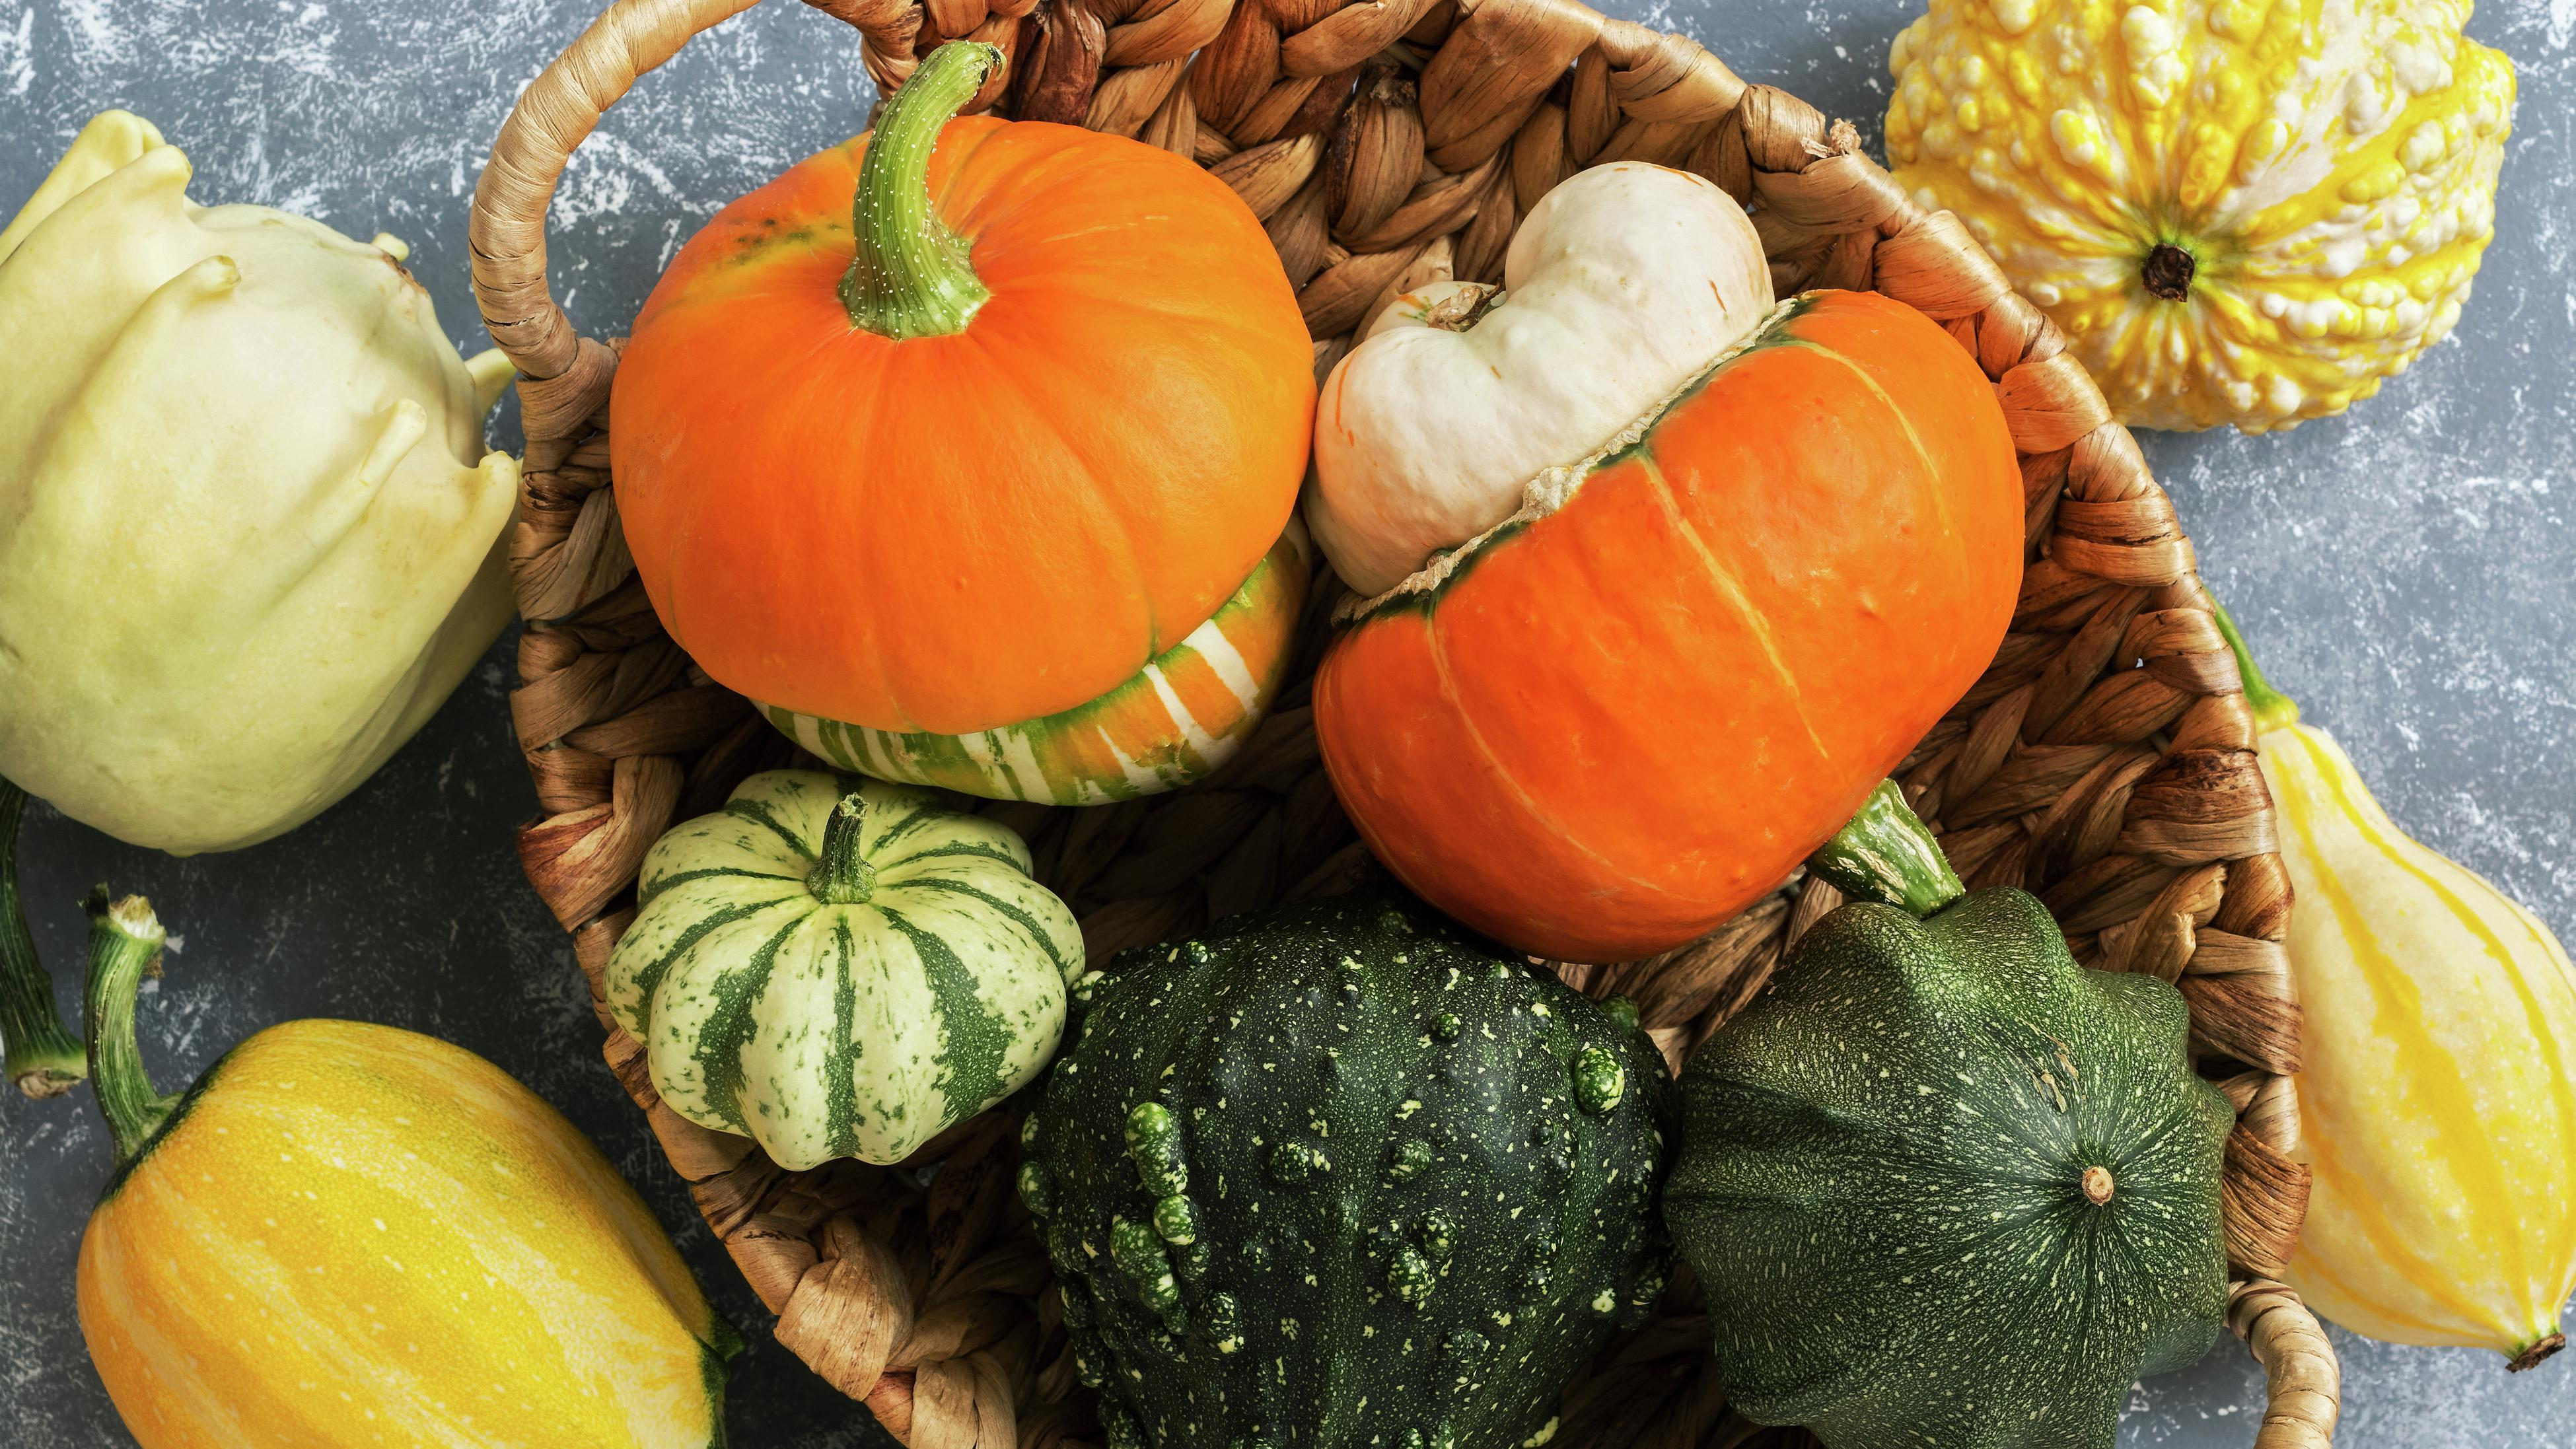 A variety of squash in a basket